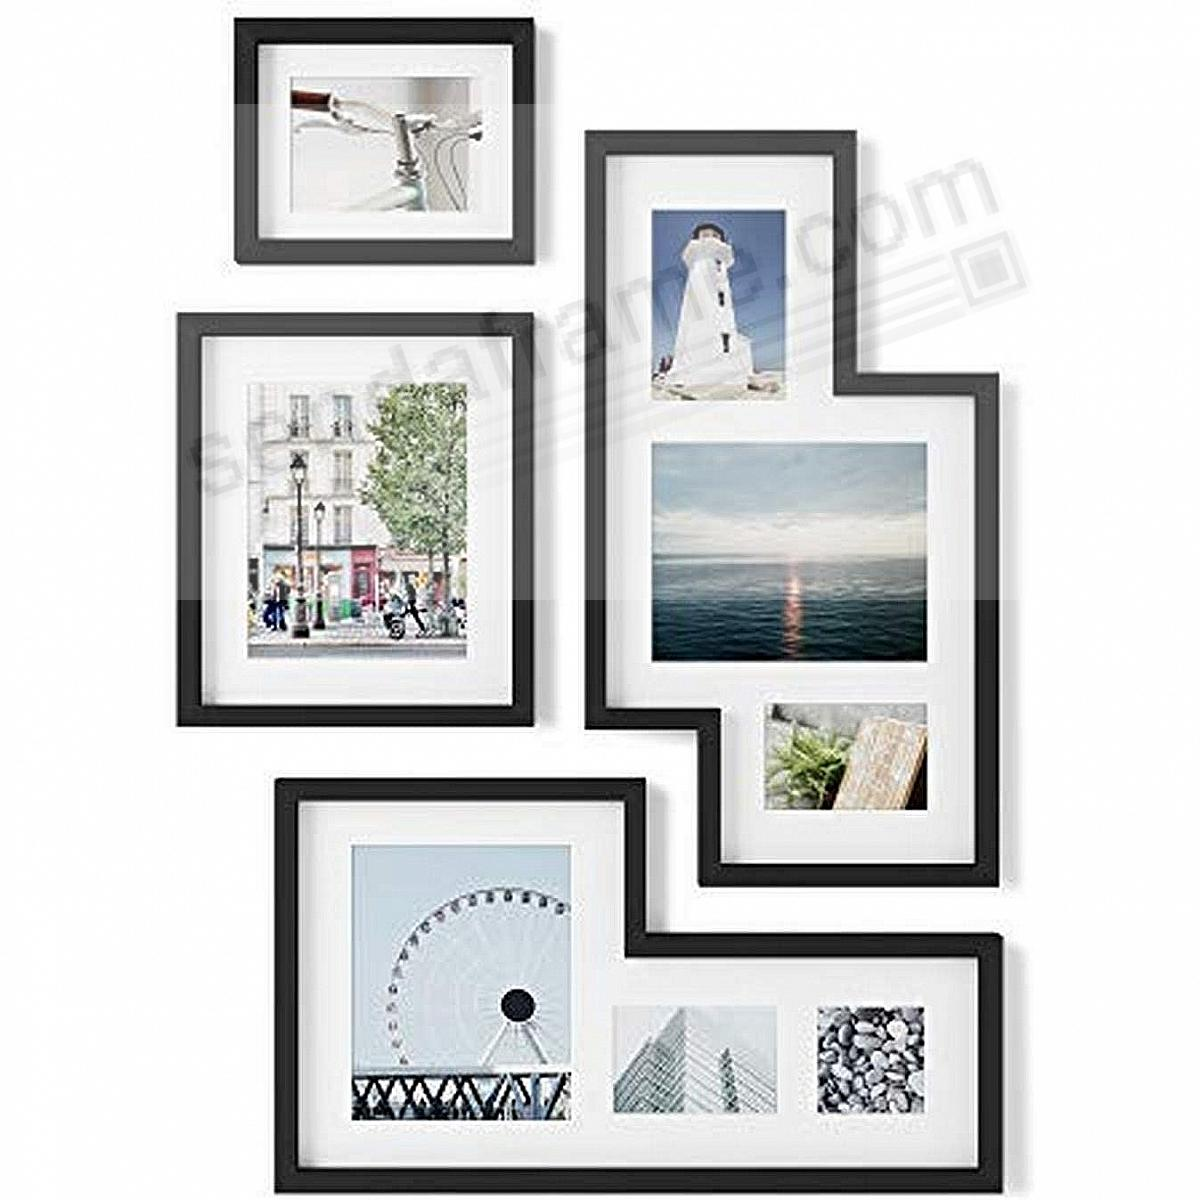 MINGLE Gallery Collage Picture Frame Set - Black - by Umbra